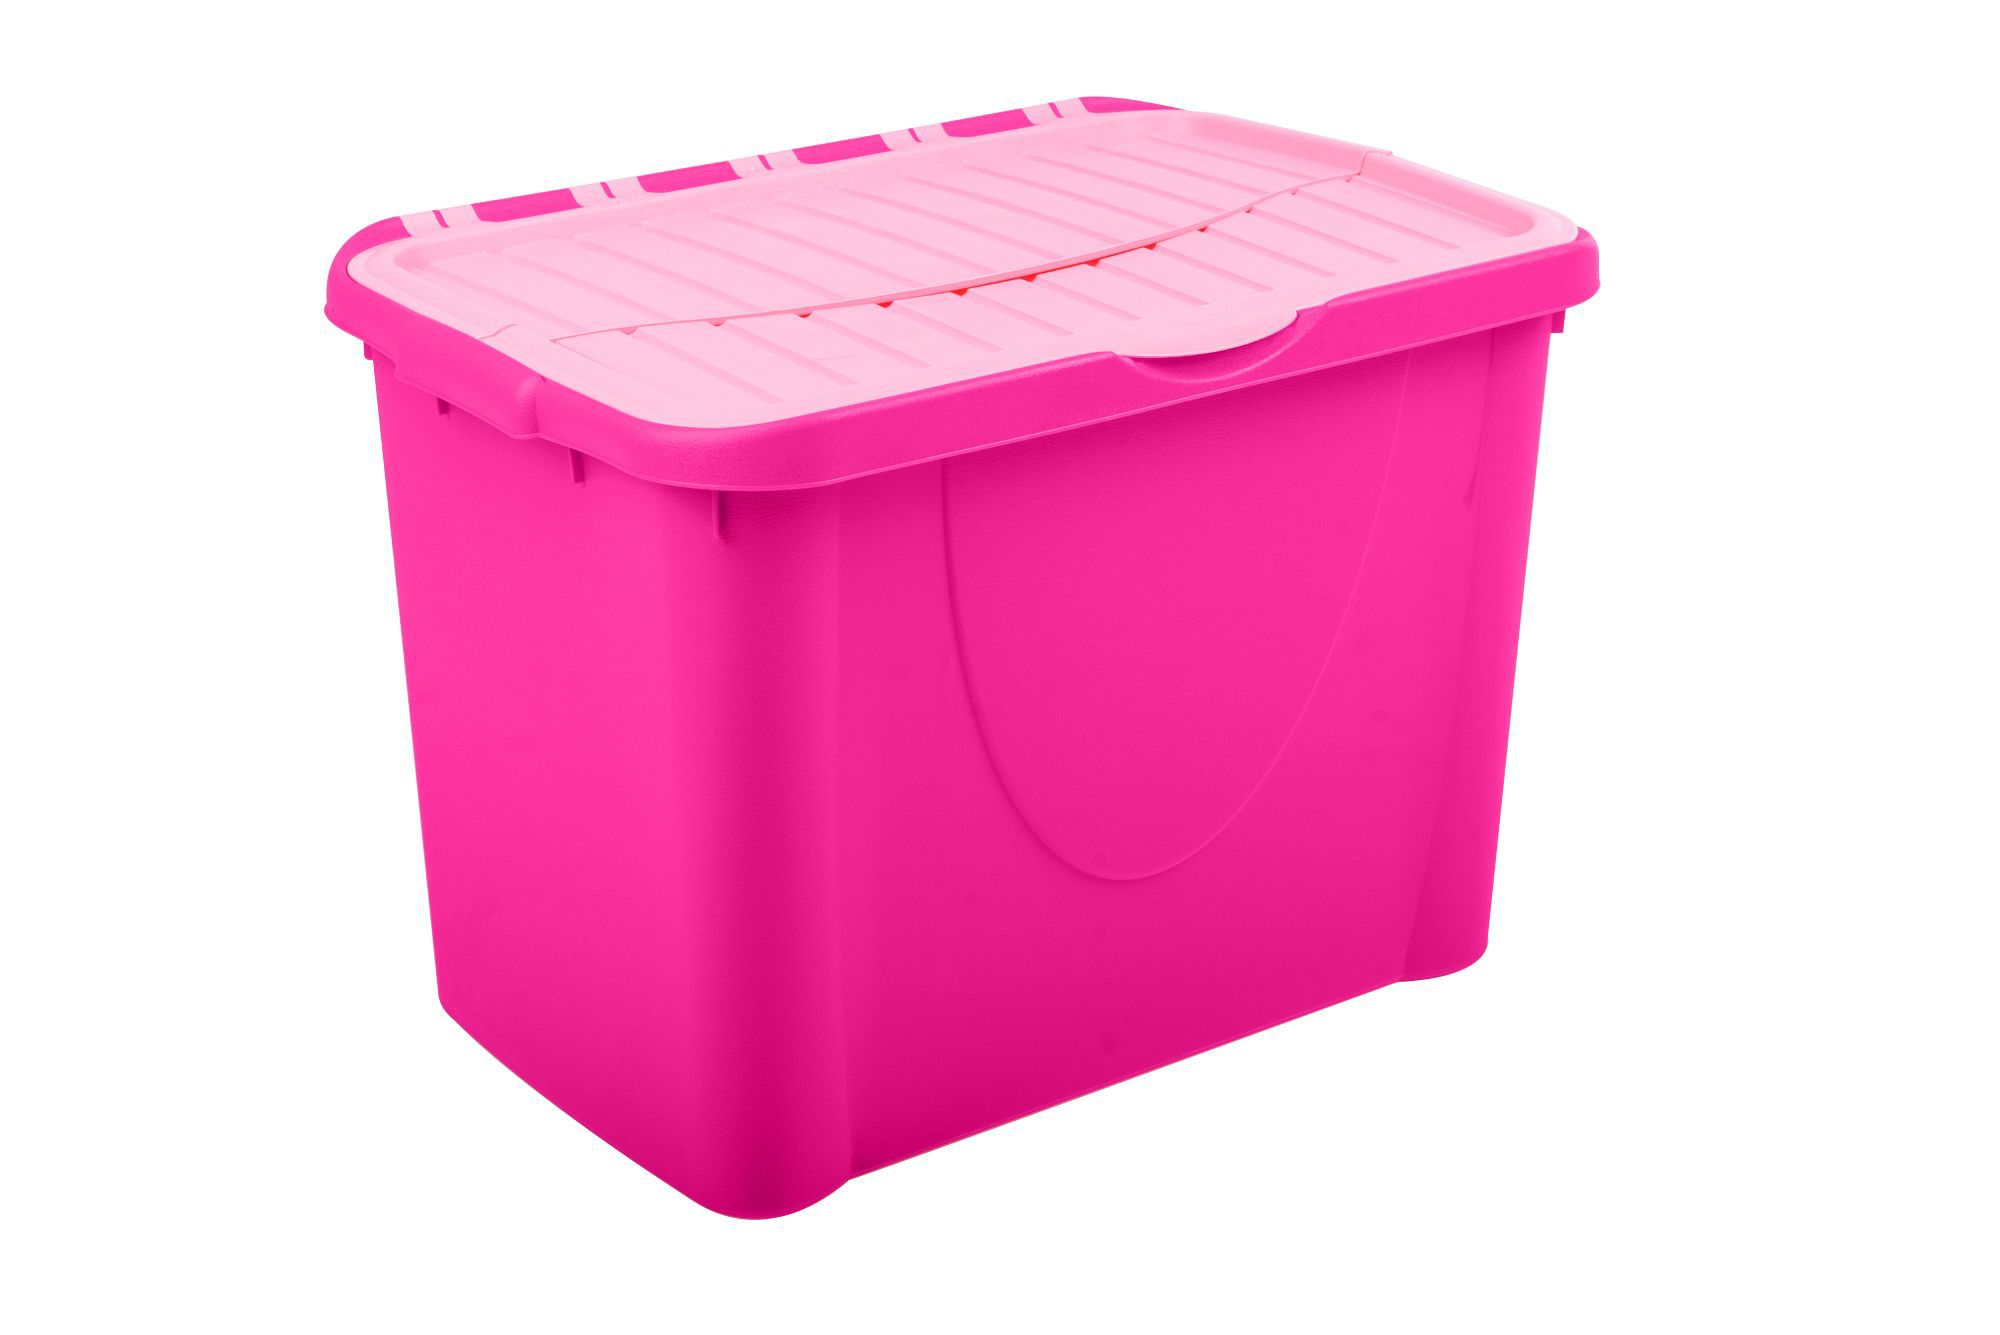 form storage boxes pink 60l plastic storage box departments diy at b q. Black Bedroom Furniture Sets. Home Design Ideas